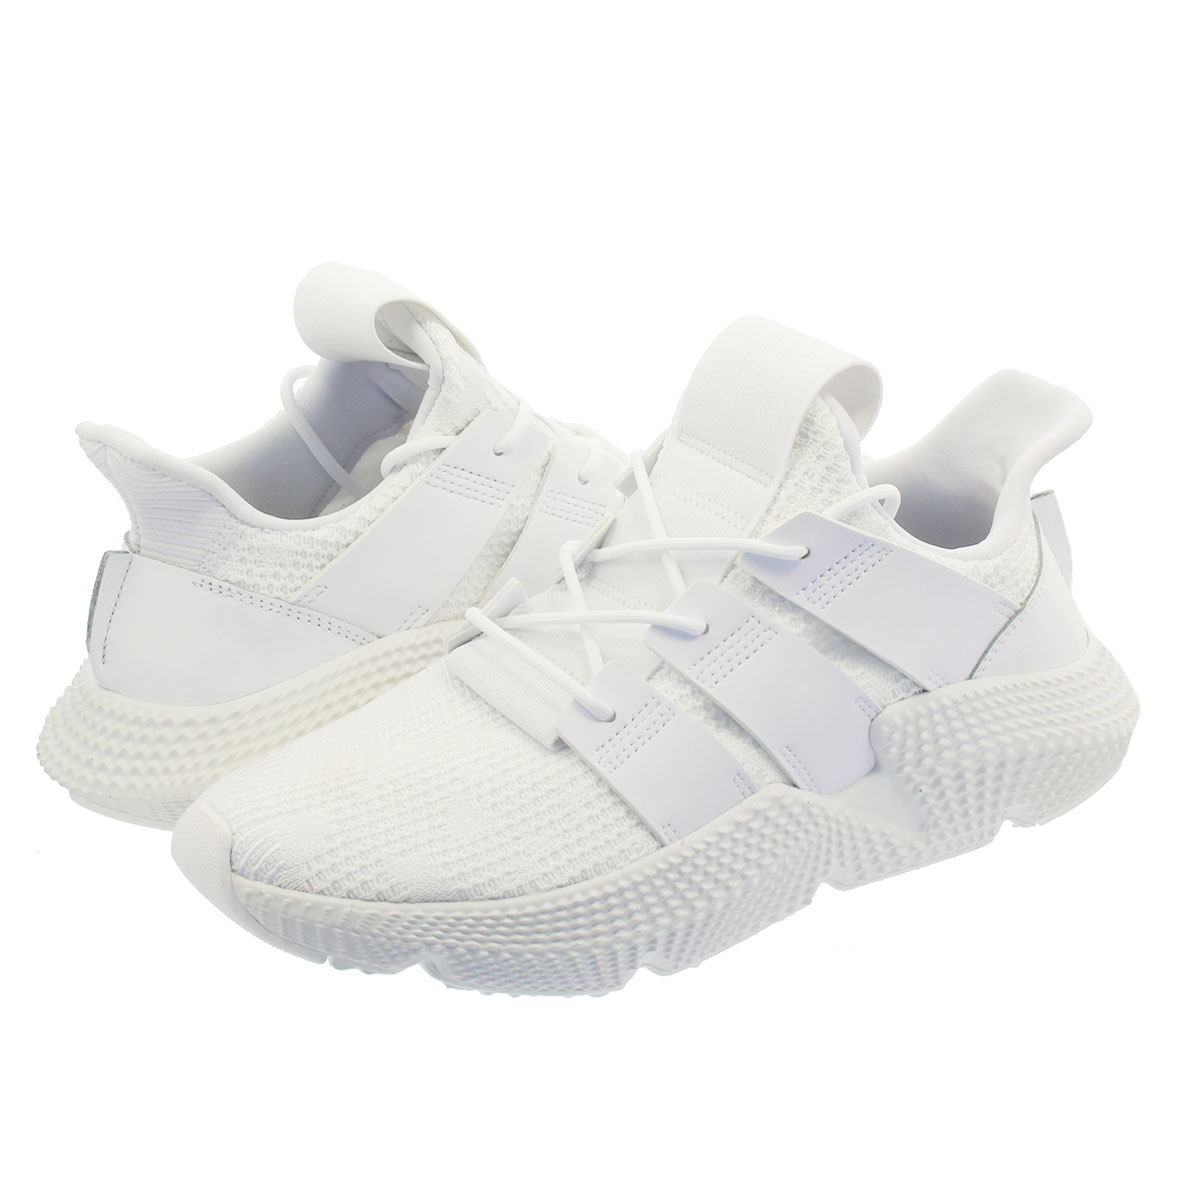 adidas PROPHERE アディダス プロフィア RUNNING WHITE/RUNNING WHITE/CORE BLACK db2705